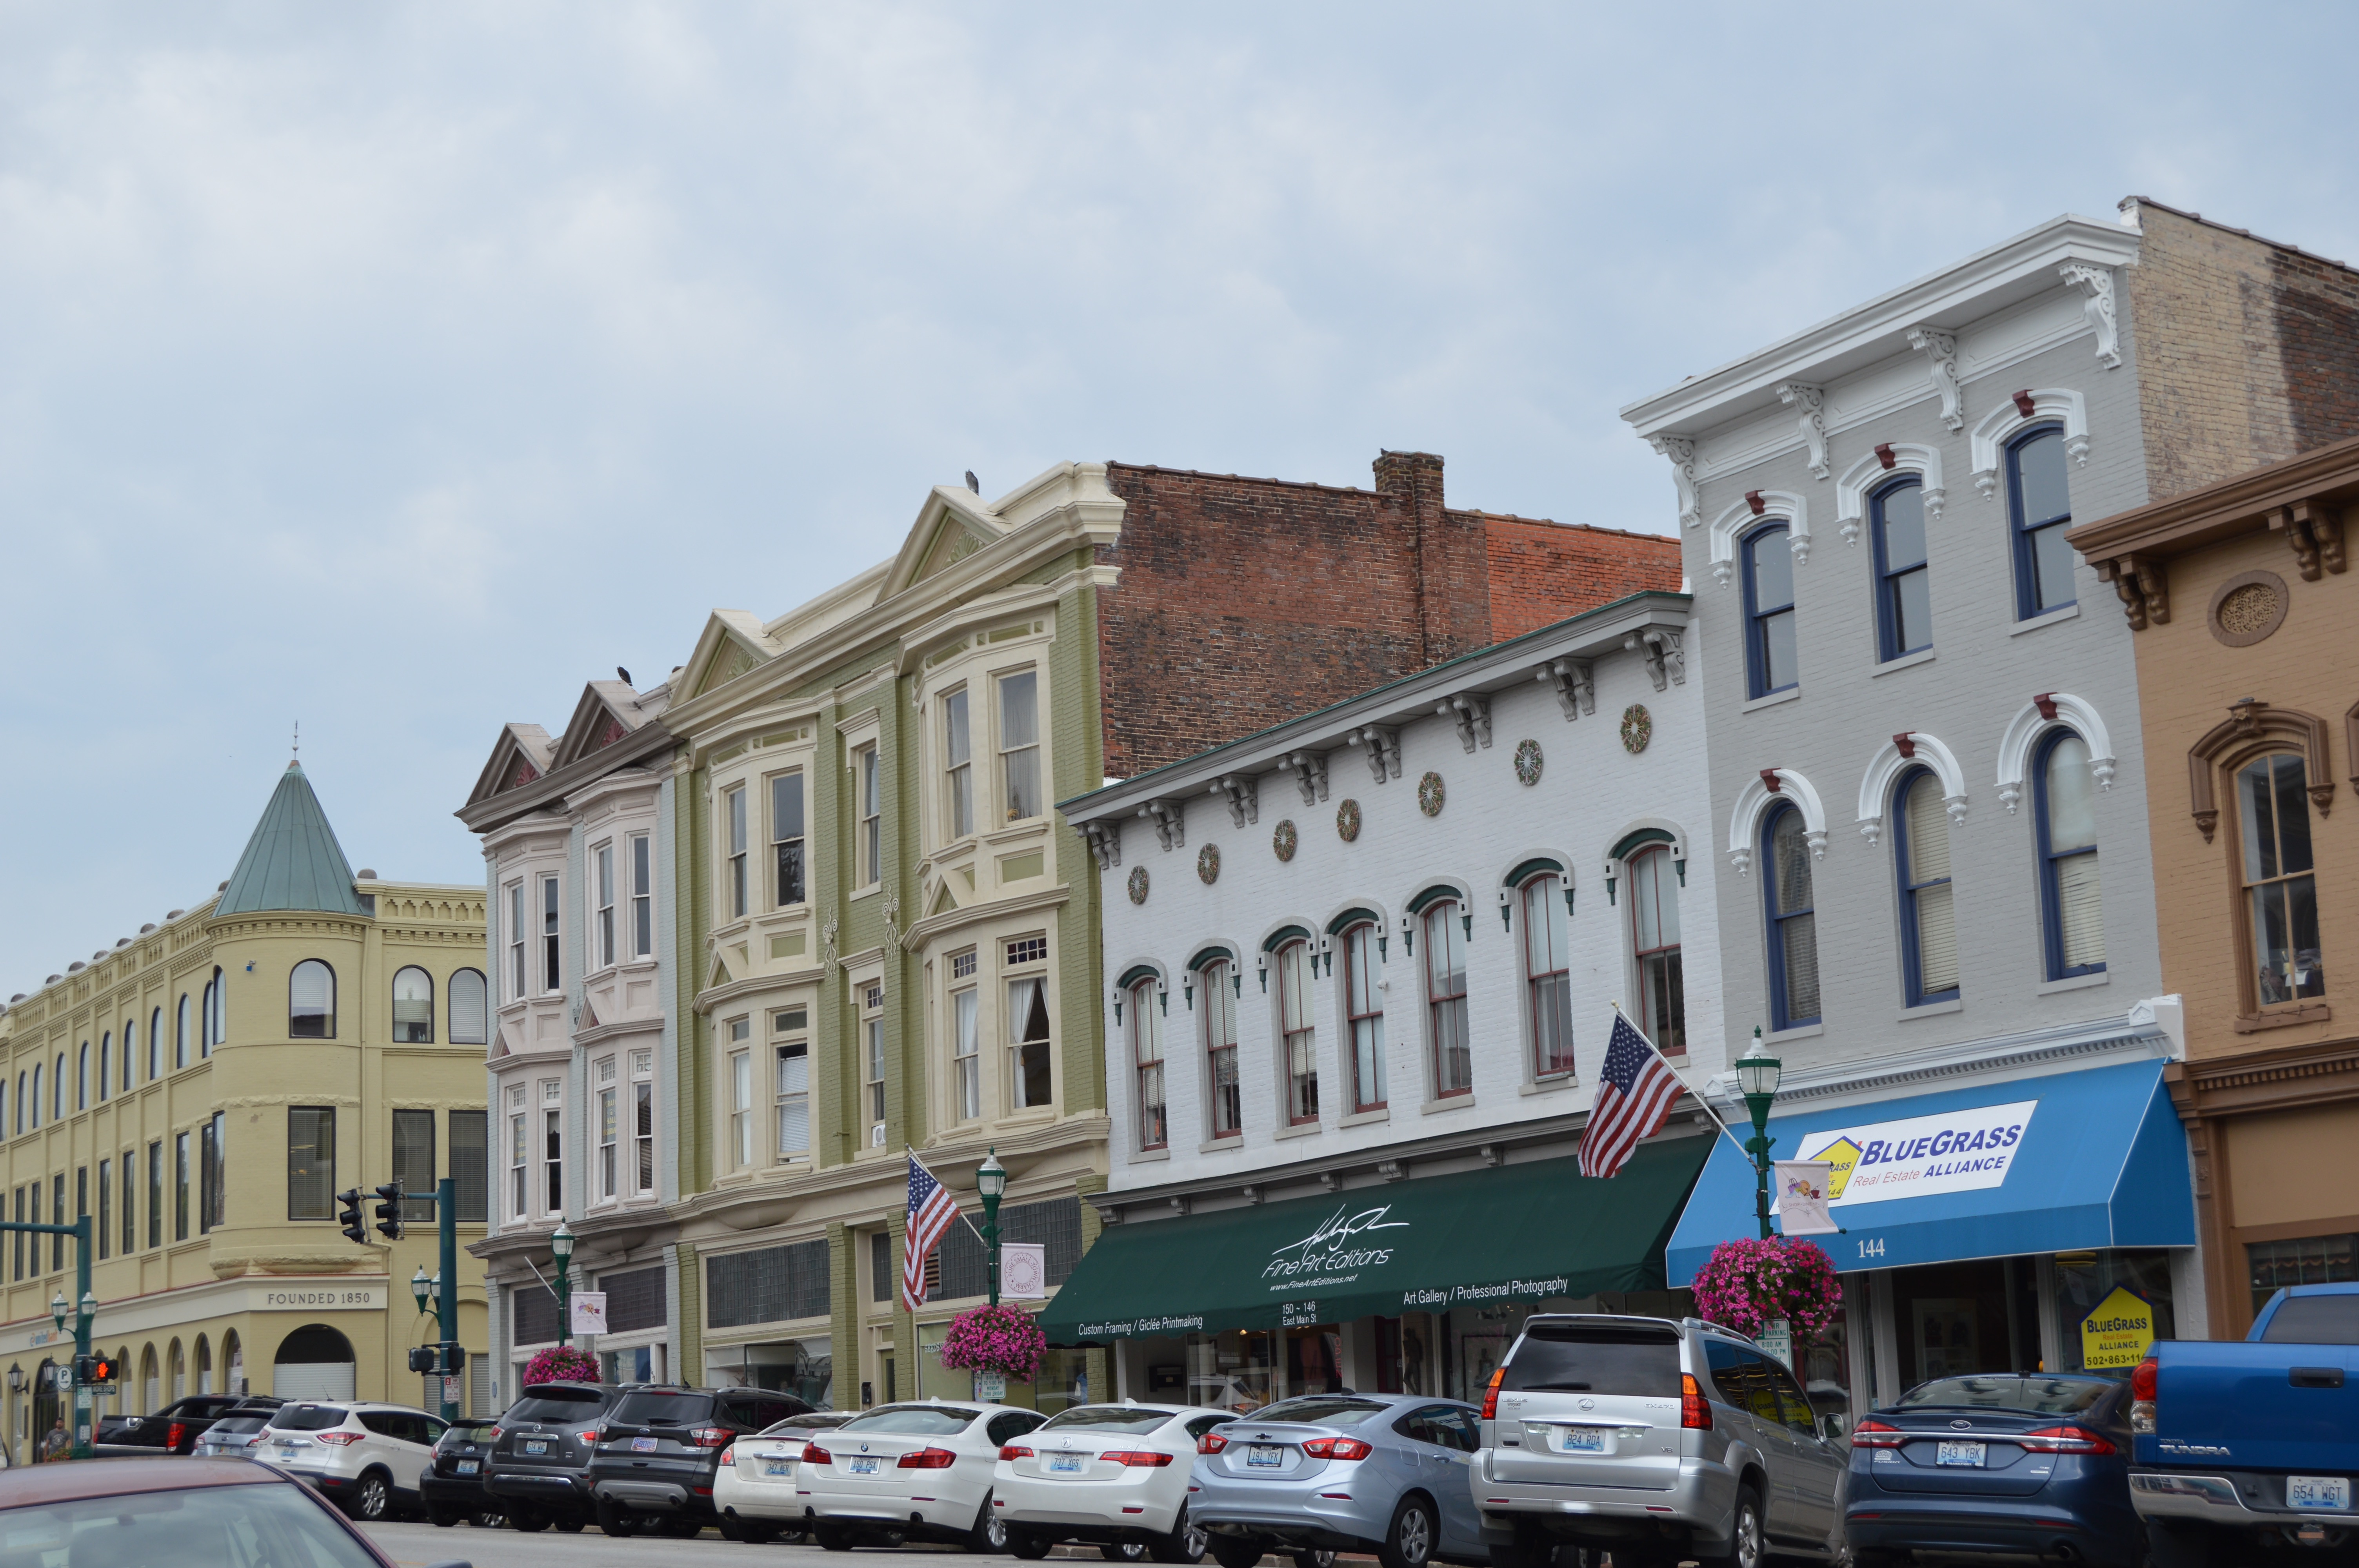 Things to do in and around Lexington Kentucky